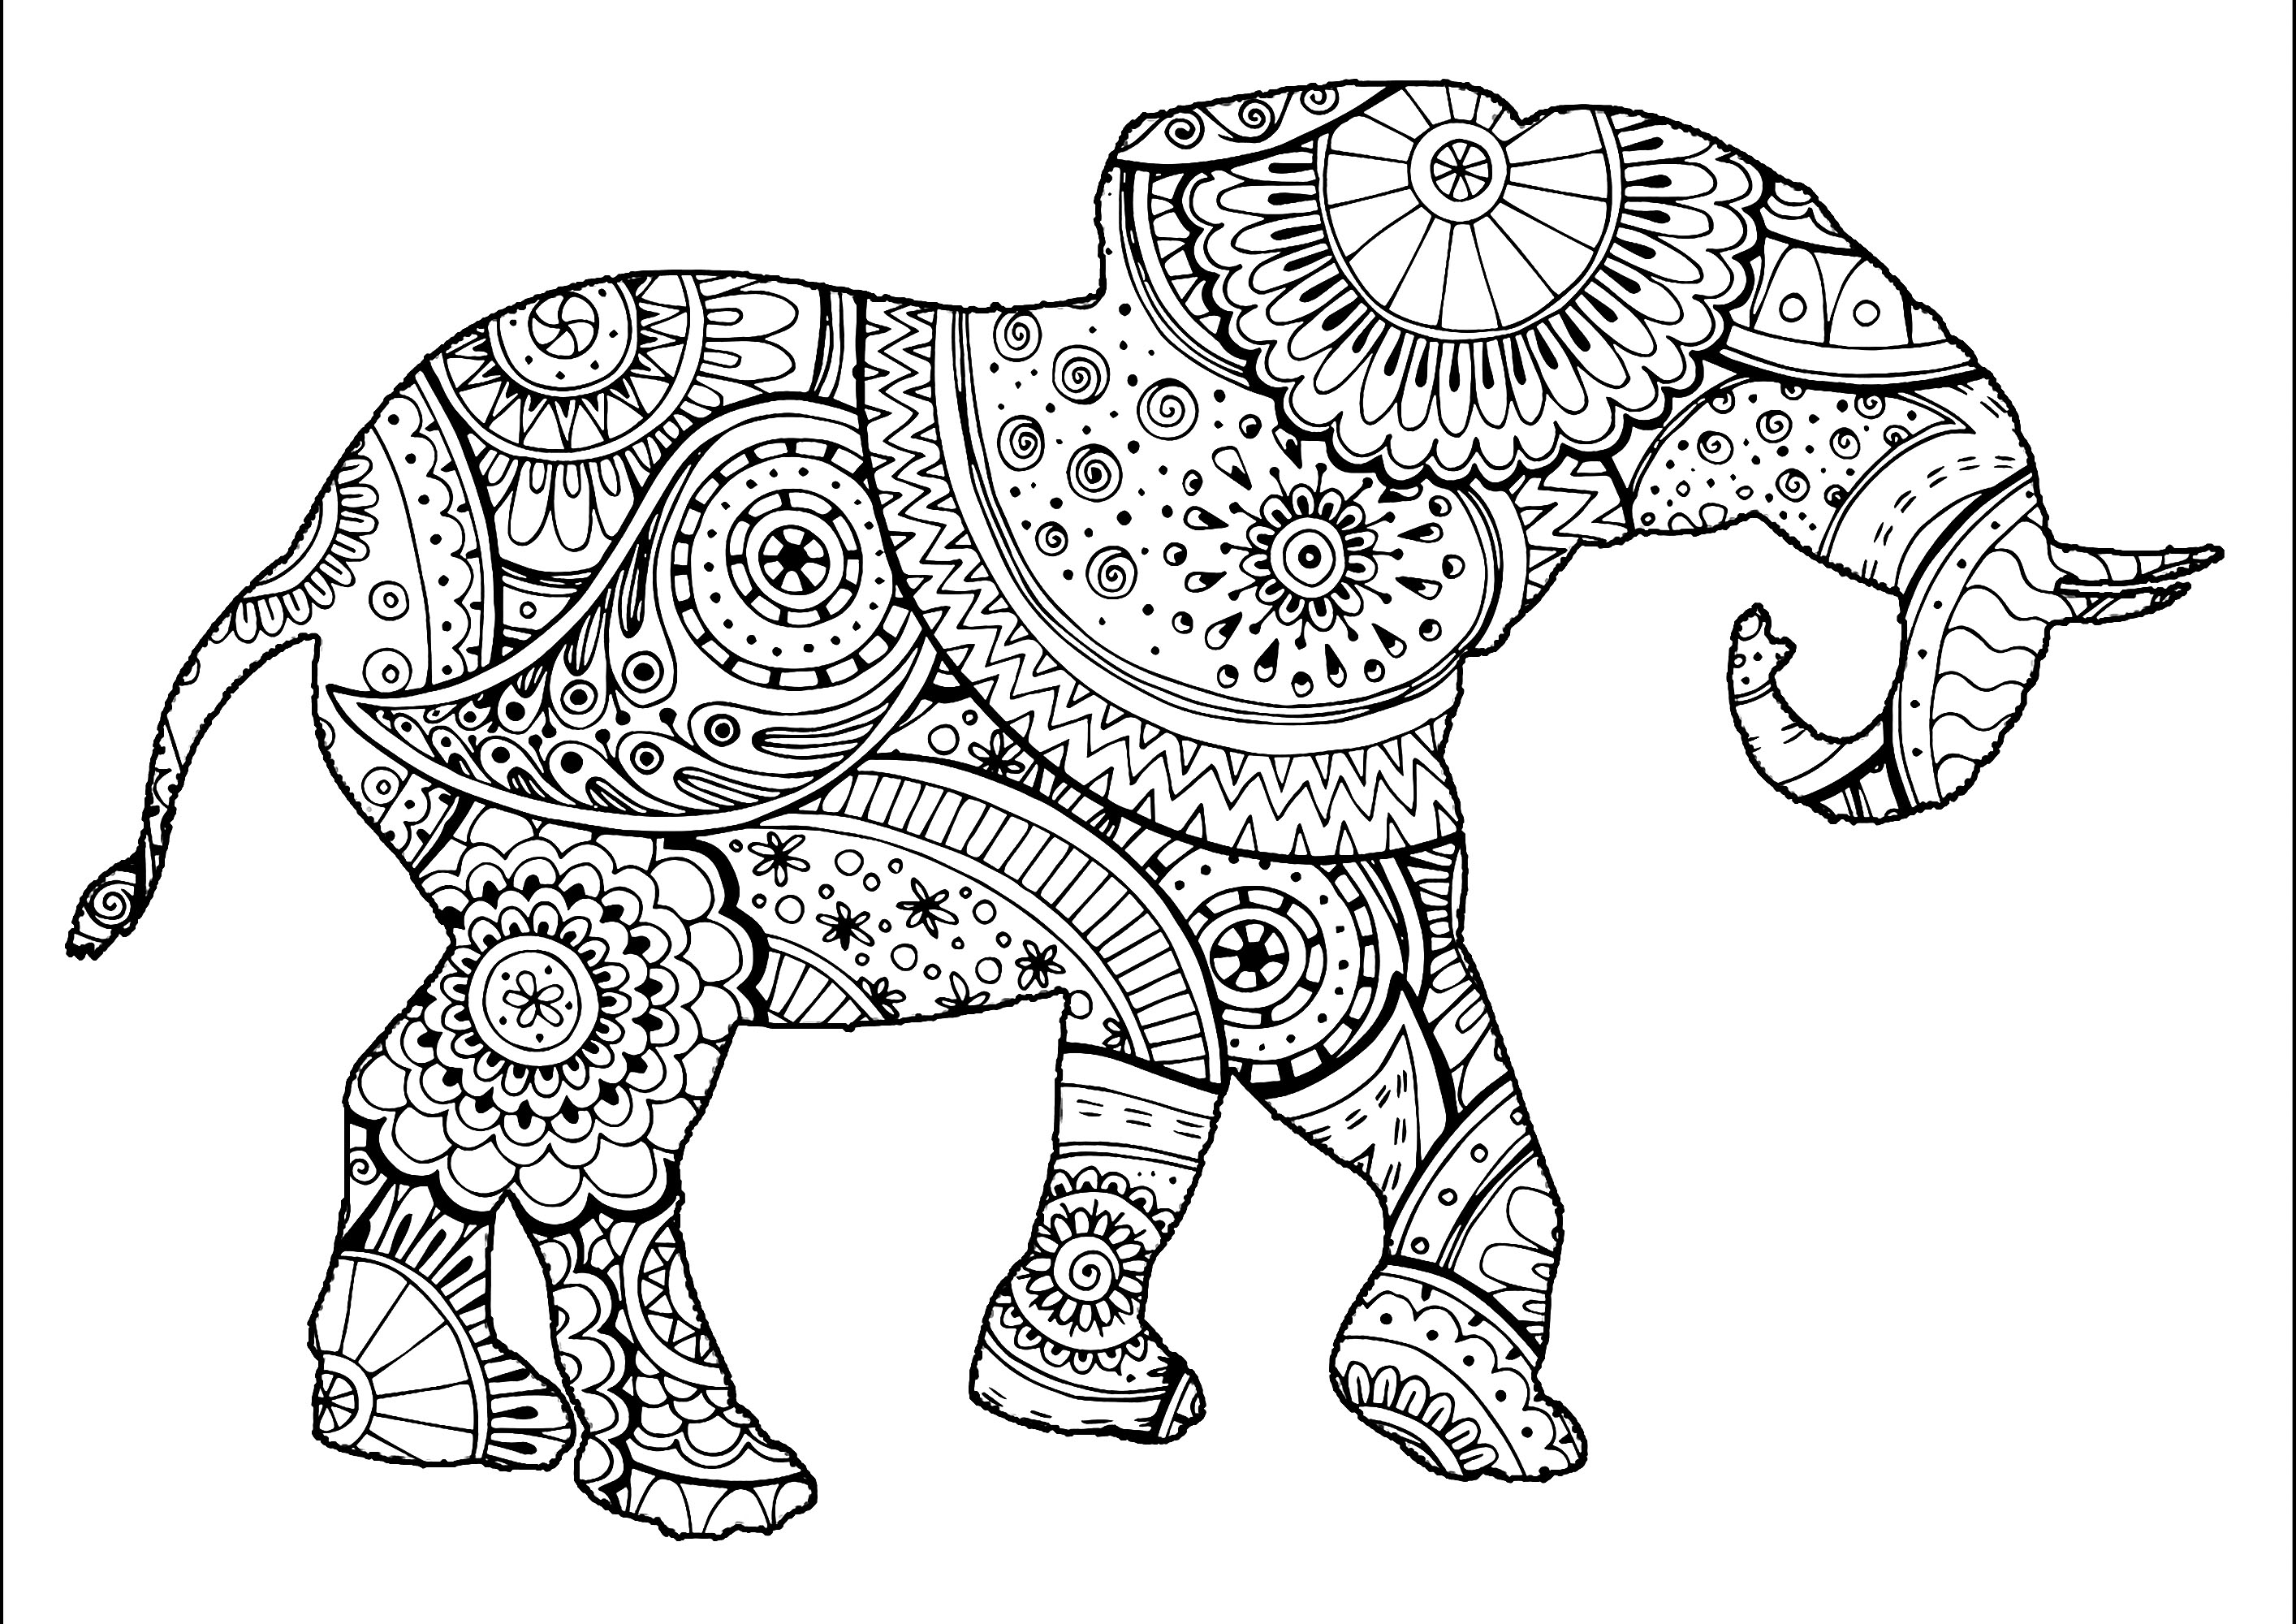 colouring picture of elephant elephant shape with patterns elephants adult coloring pages elephant of colouring picture